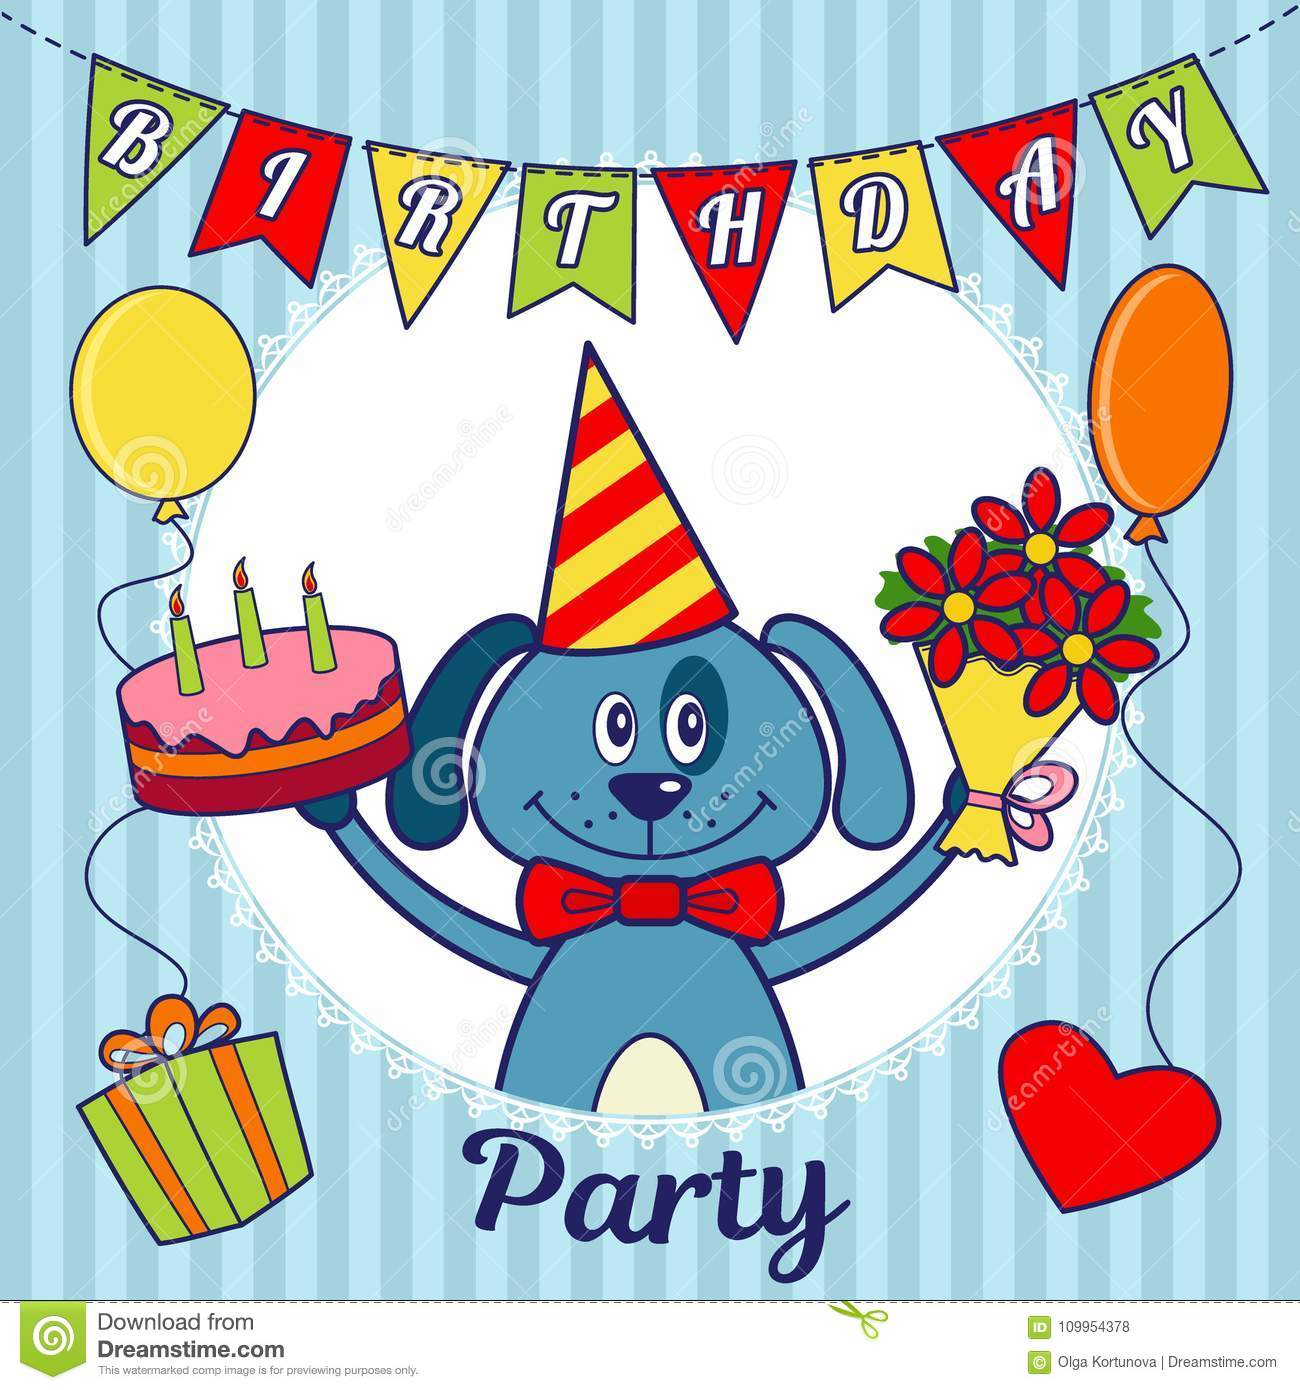 Birthday Party Invitation Card Or Greeting A Cartoon Dog With